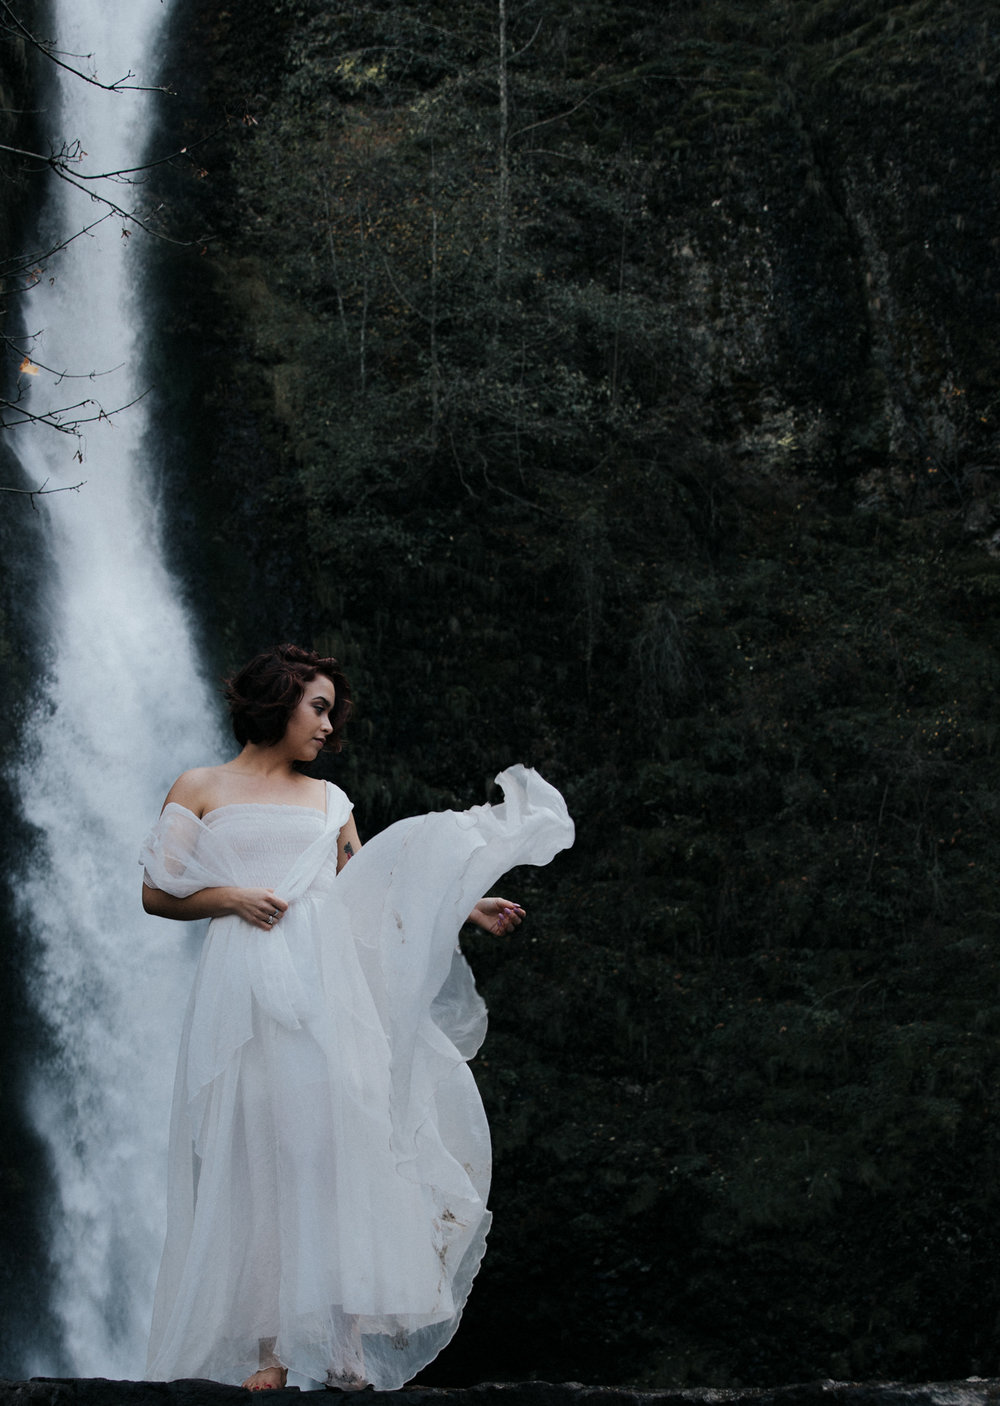 Woman dancing in white dress in woods, Adventurous Outdoor + Waterfall Couples Session | Croative Photography